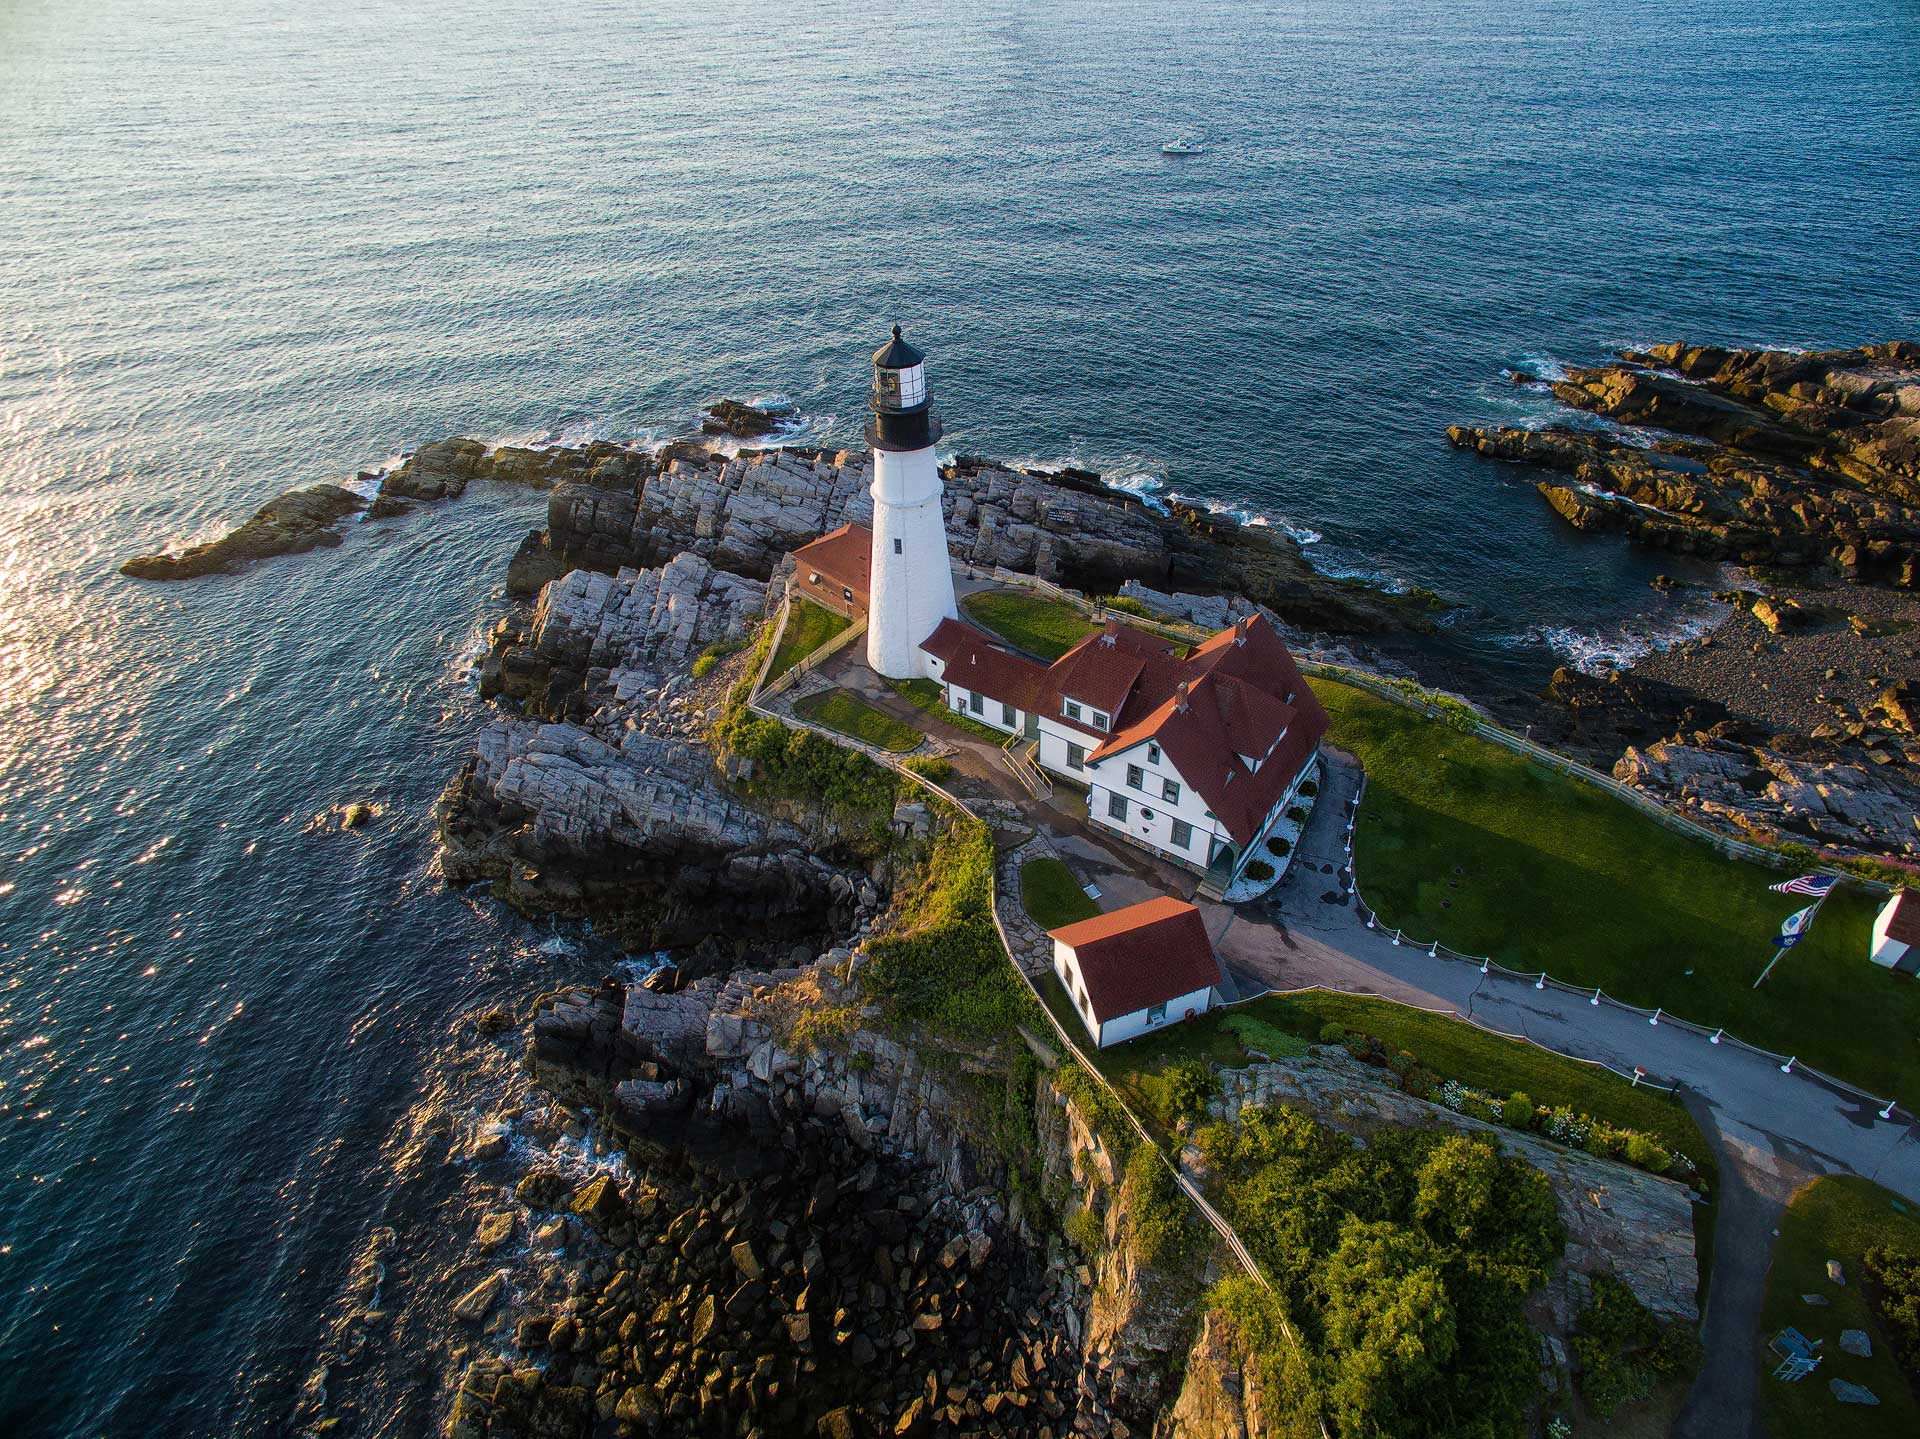 atlantic, ocean, coast, lighthouse, portland head, drone, aerial, photos, dji, phantom 3, sunrise, bernard chen, timescapes, photo